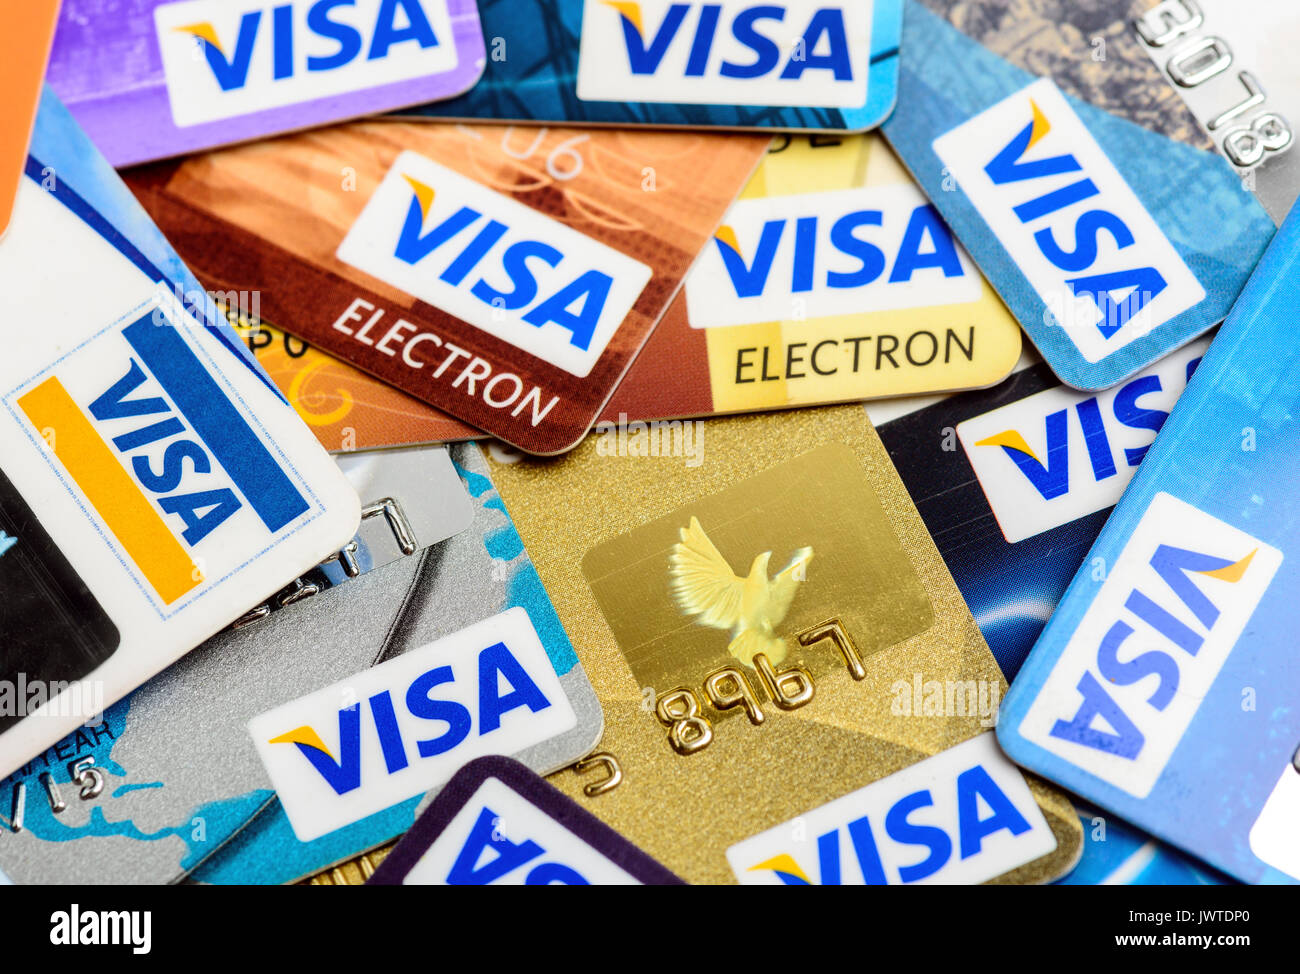 too many credit card stock photos & too many credit card stock